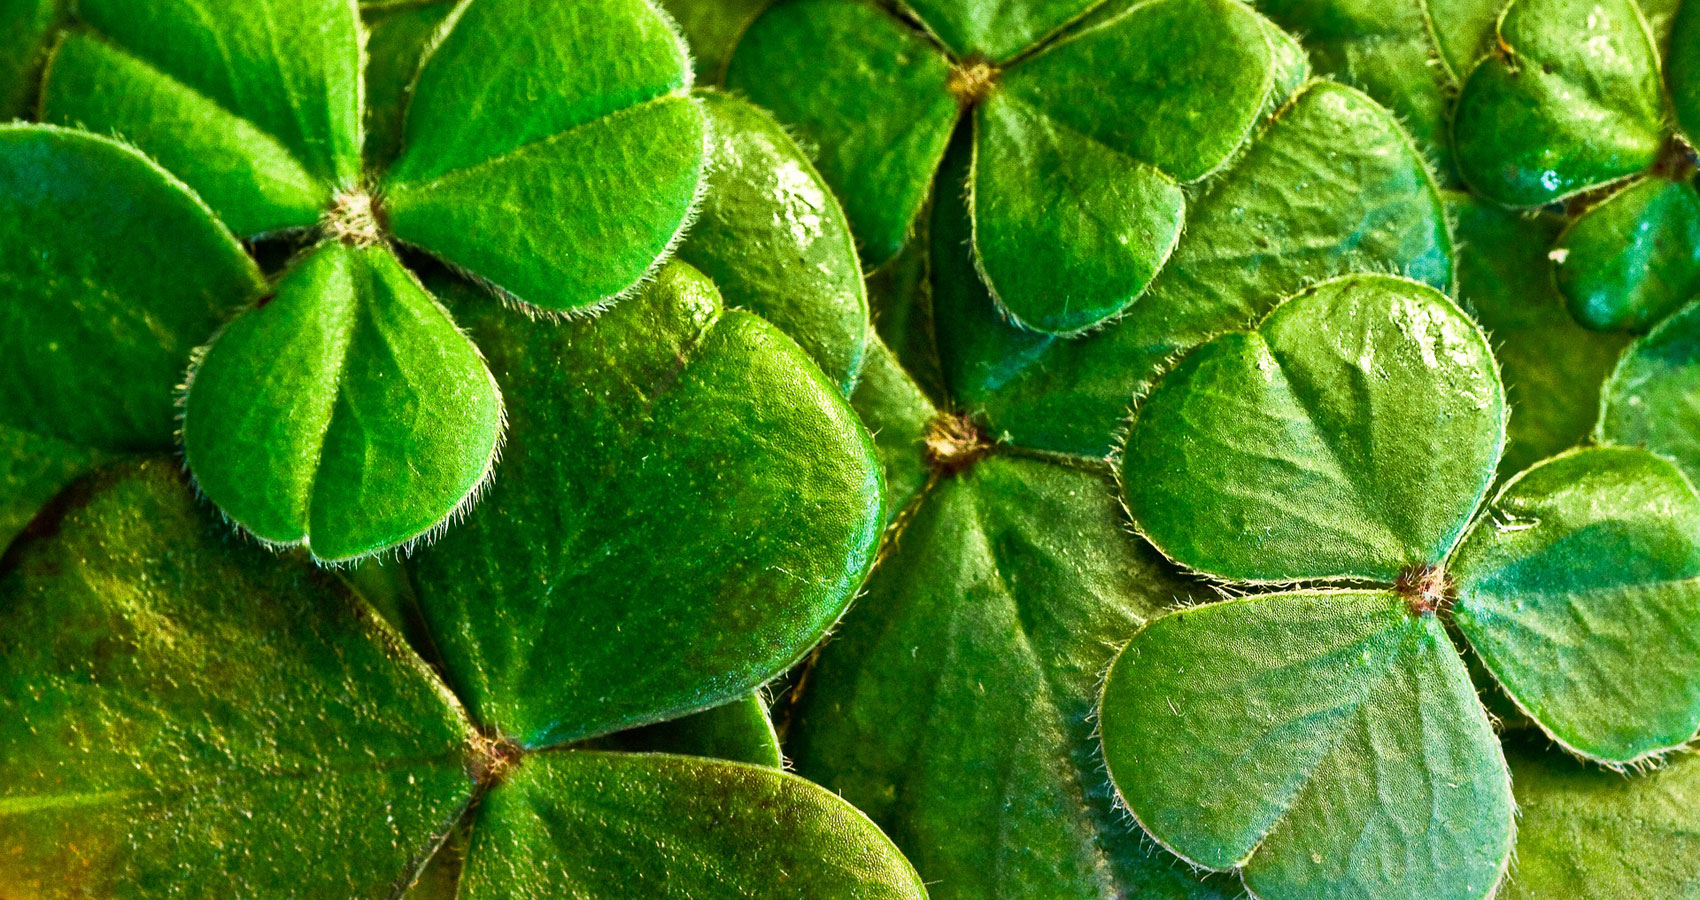 St. Patrick's Day, a poem by Eliza Cook at Spillwords.com